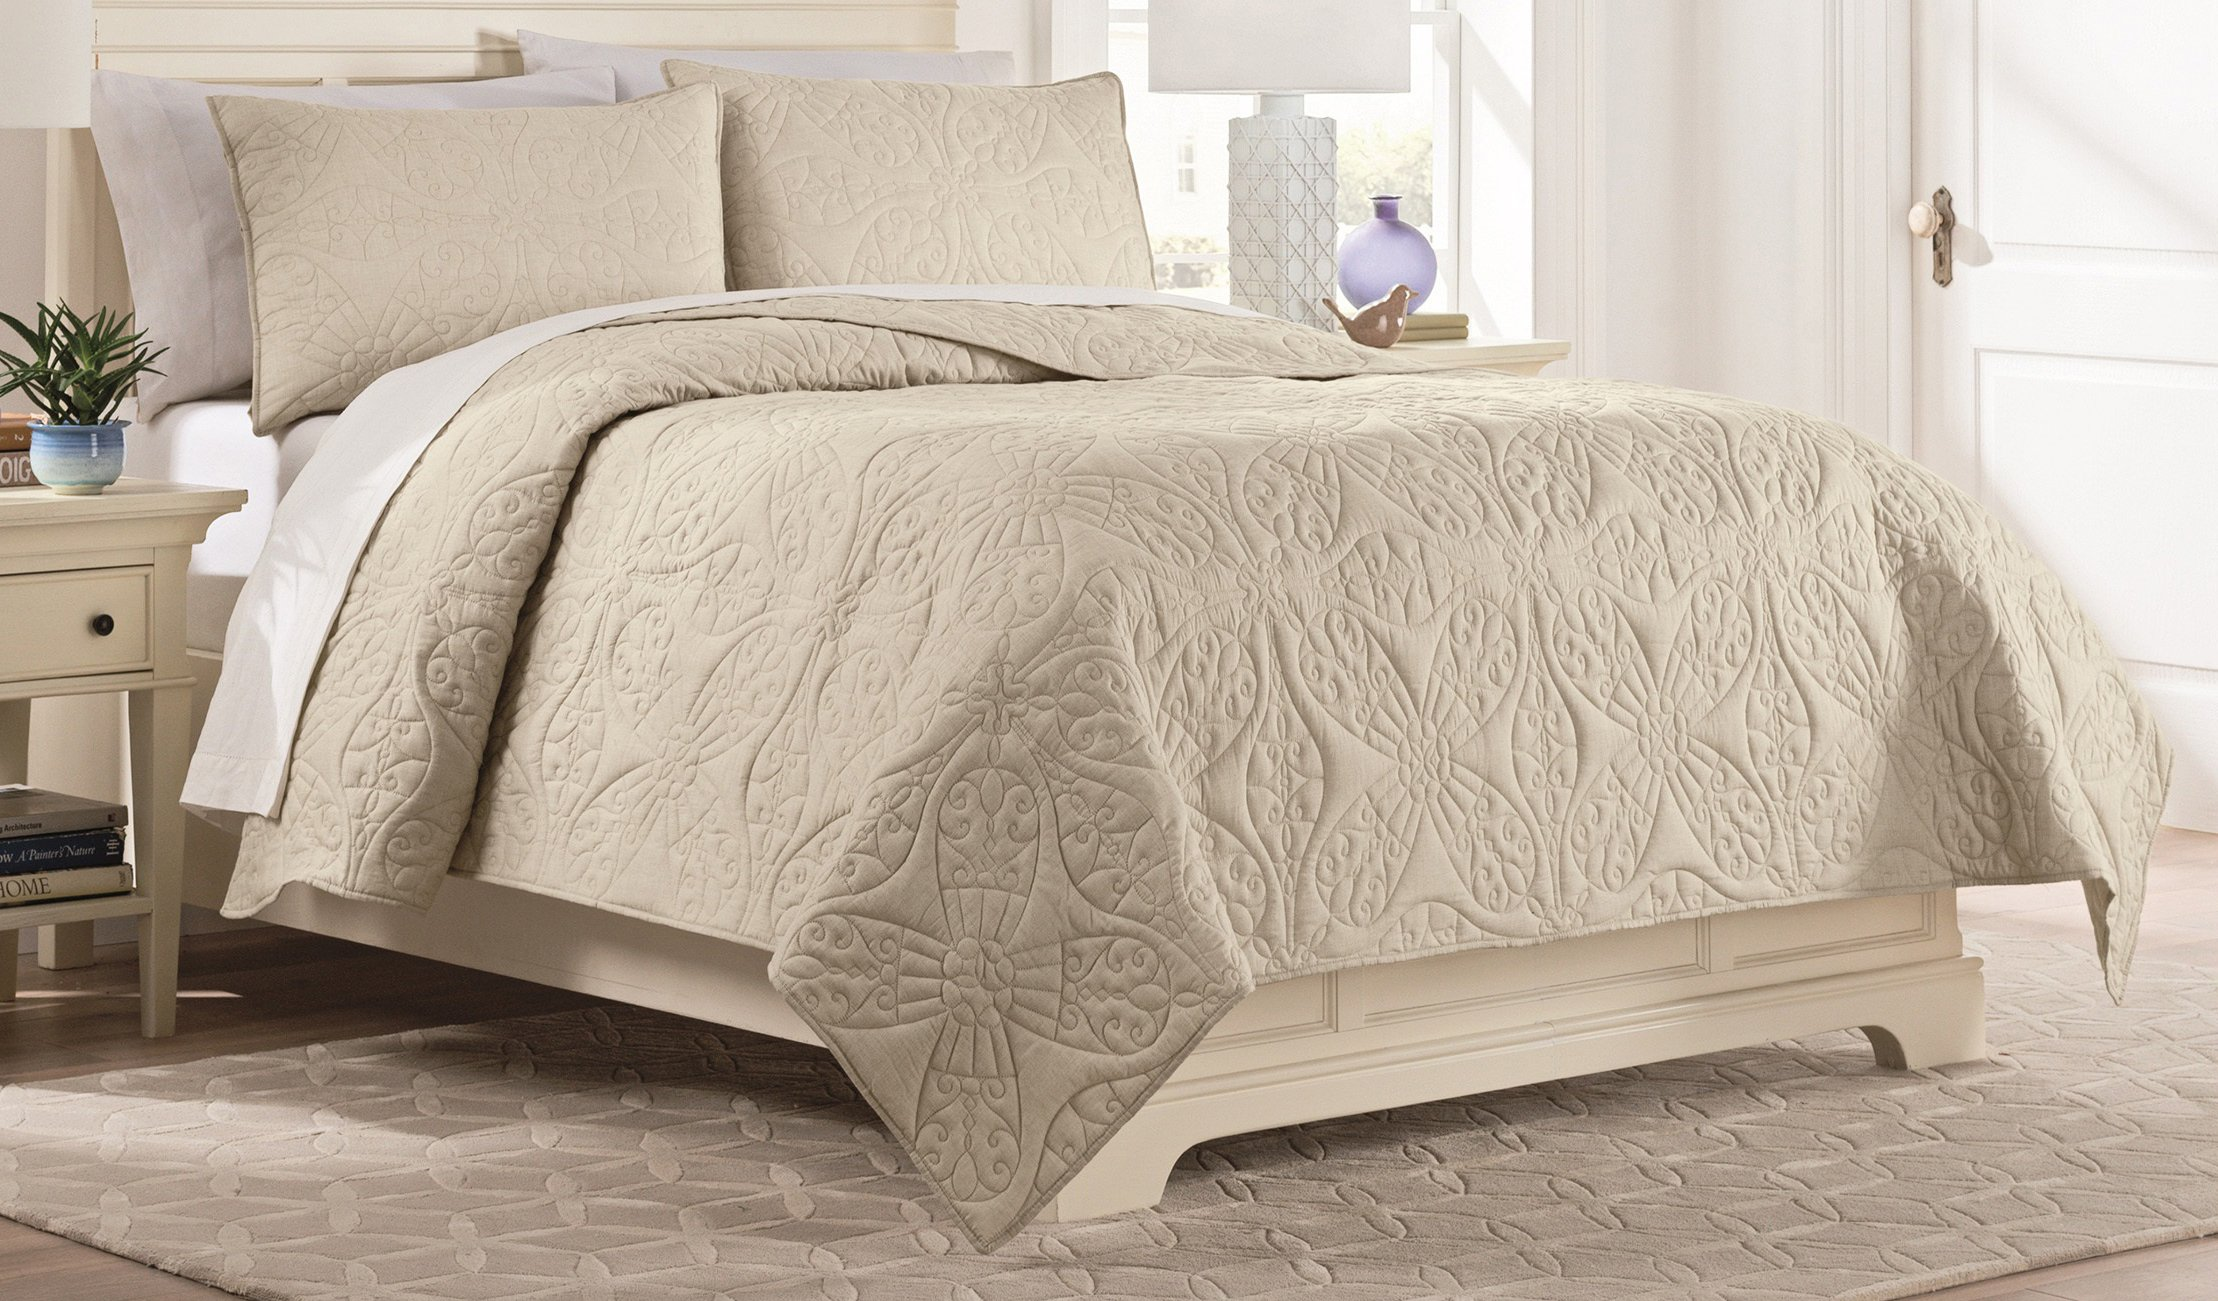 Vue Nepal Quilt Set, King, Oatmeal